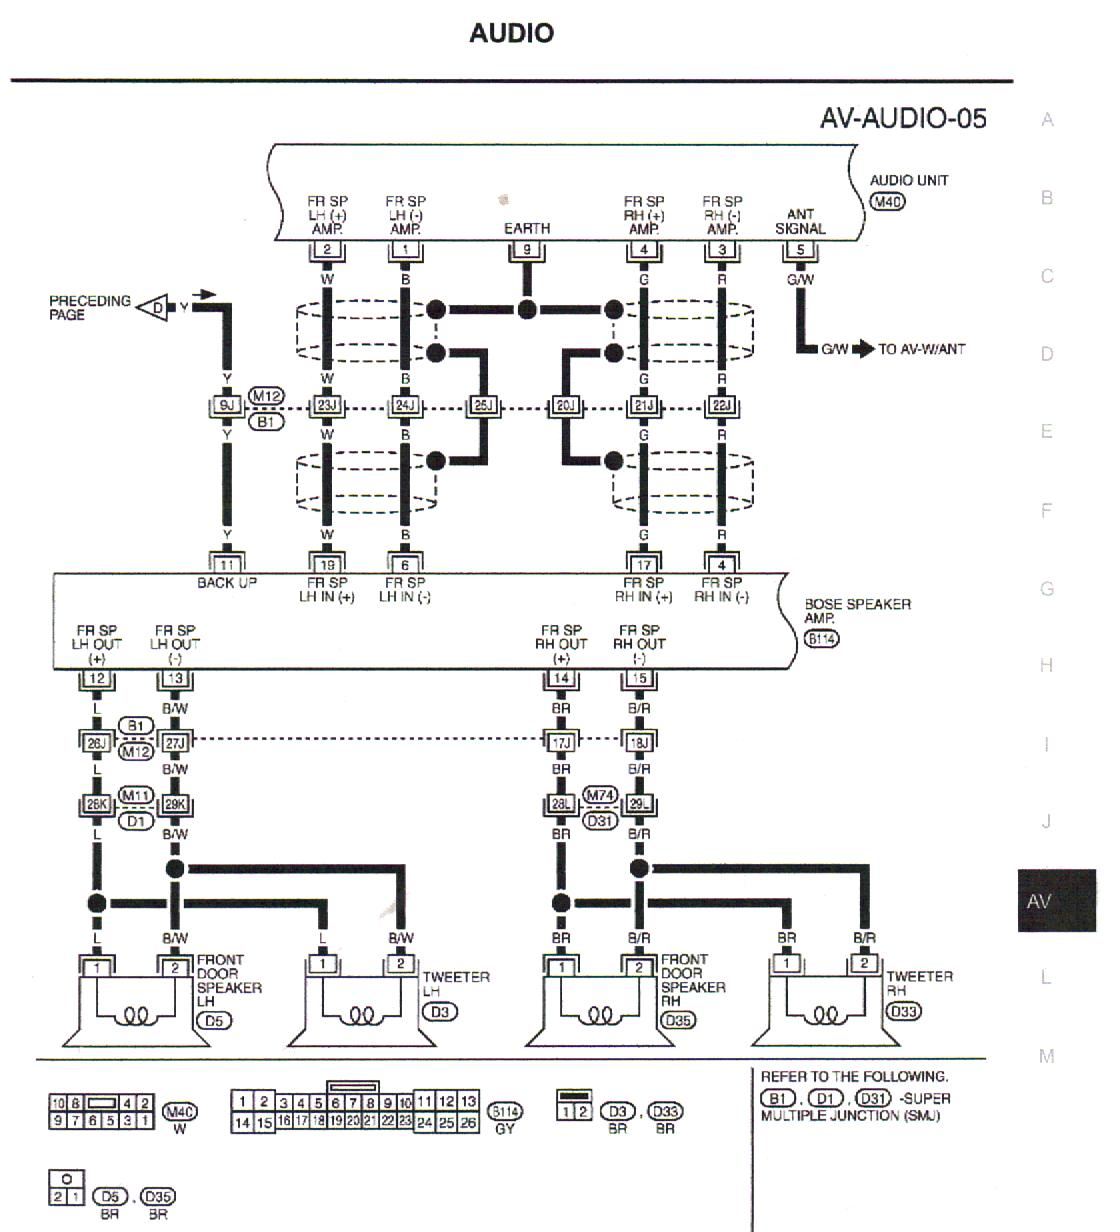 infiniti qx56 speaker wiring diagram infiniti fuses, infiniti parts 2004  infiniti dtr relay diagrams 2005